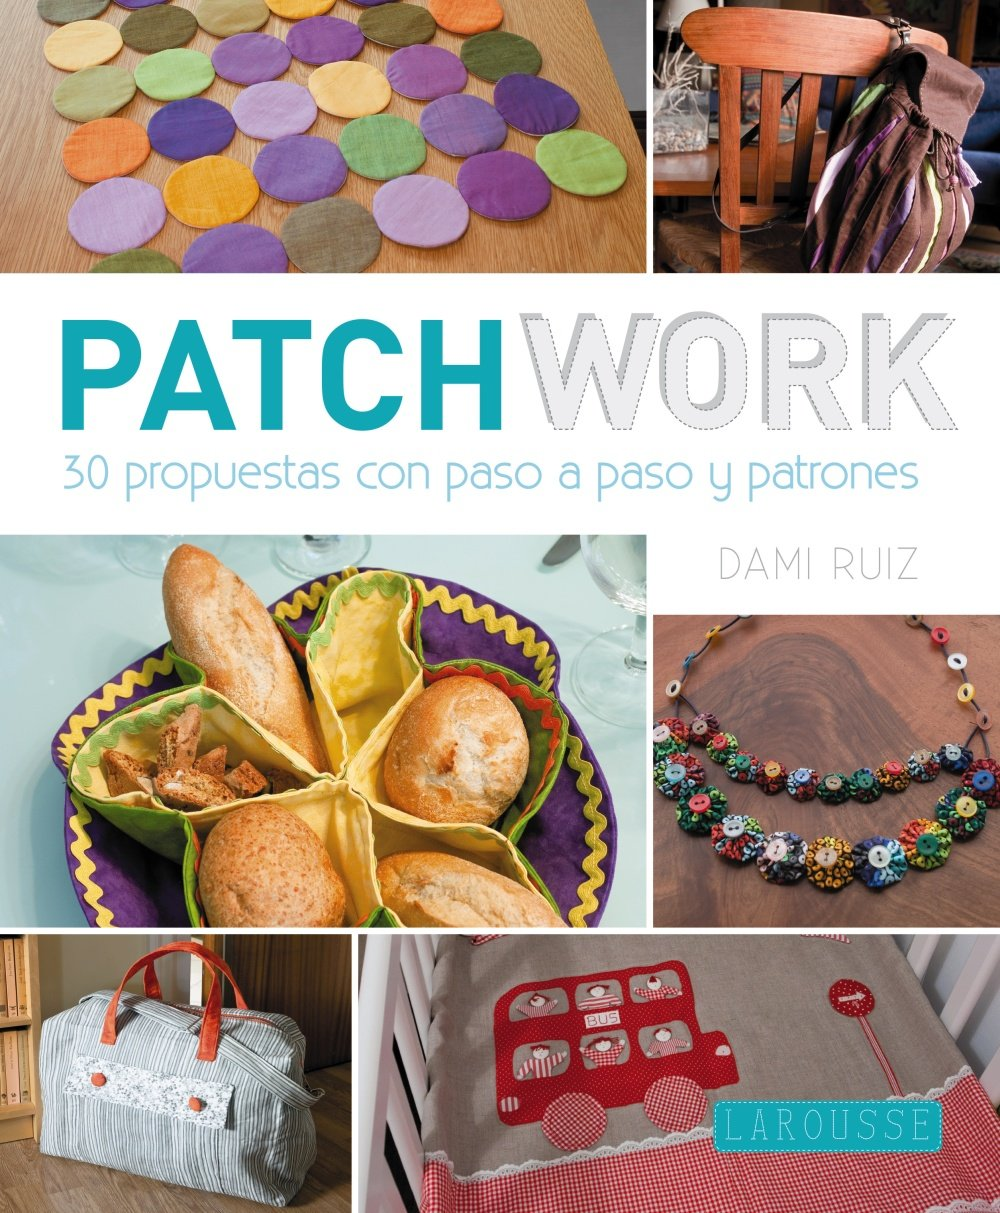 Patchwork: 30 respuestas con paso a paso y patrones / 30 Responses Step to Step and Patterns (Spanish Edition) (Spanish) Paperback – October 30, 2014